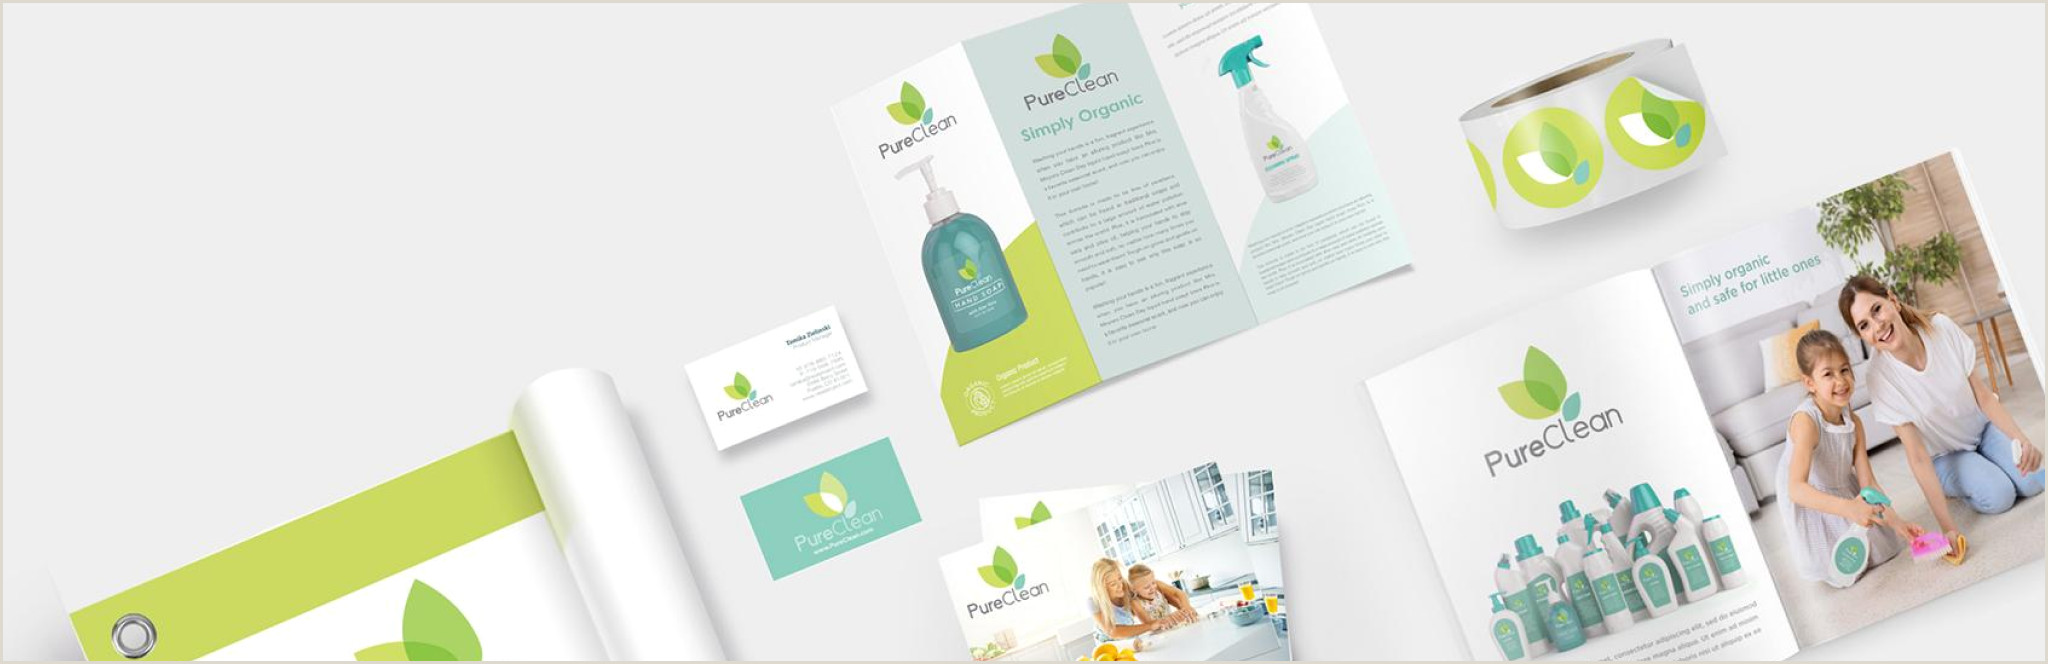 Create Professional Business Cards Printplace High Quality Line Printing Services